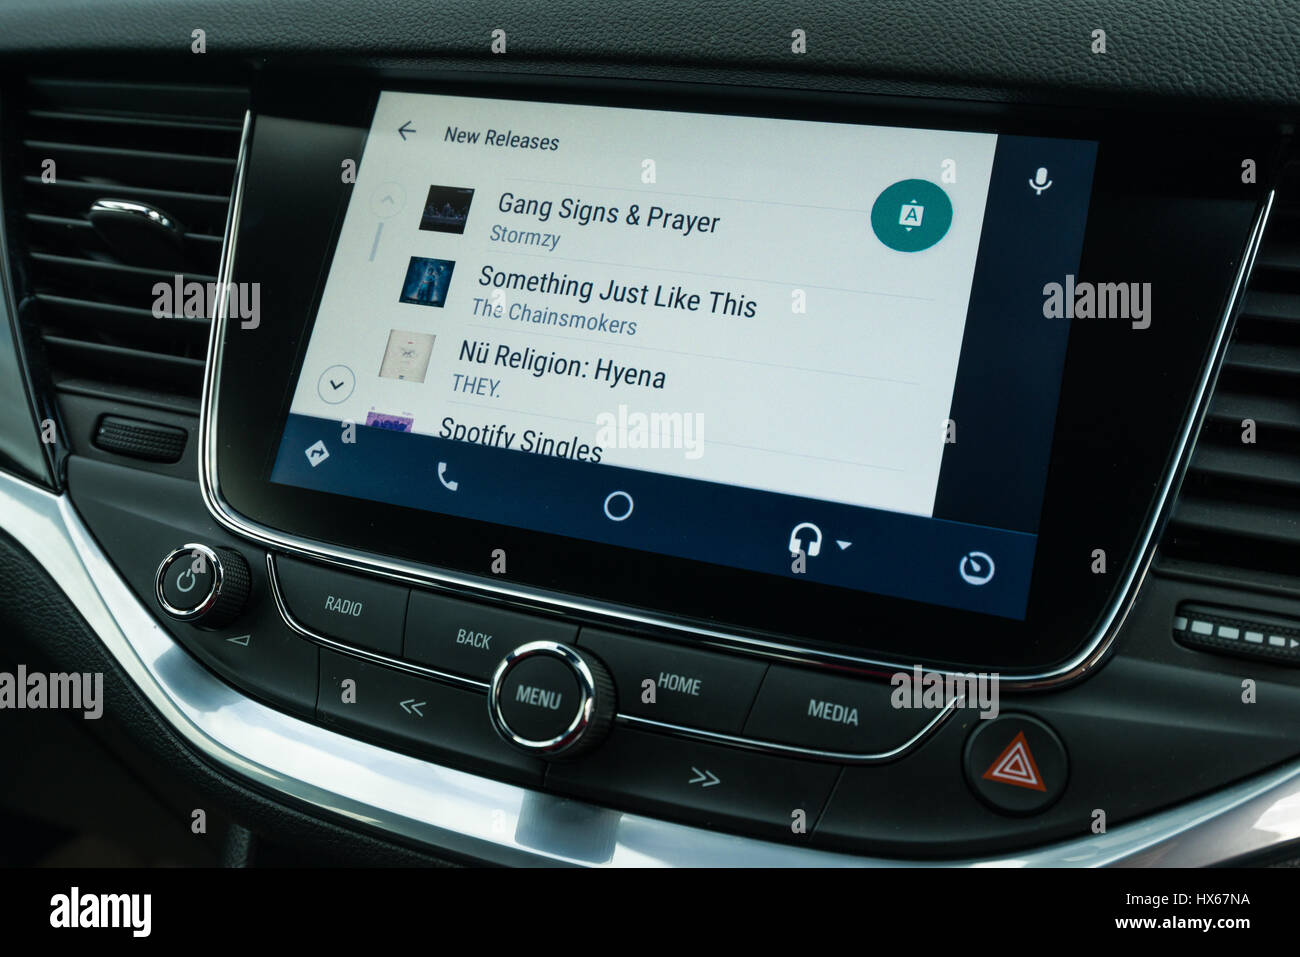 Android Auto Car Vehicle Navigation Interface With Spotify Screen